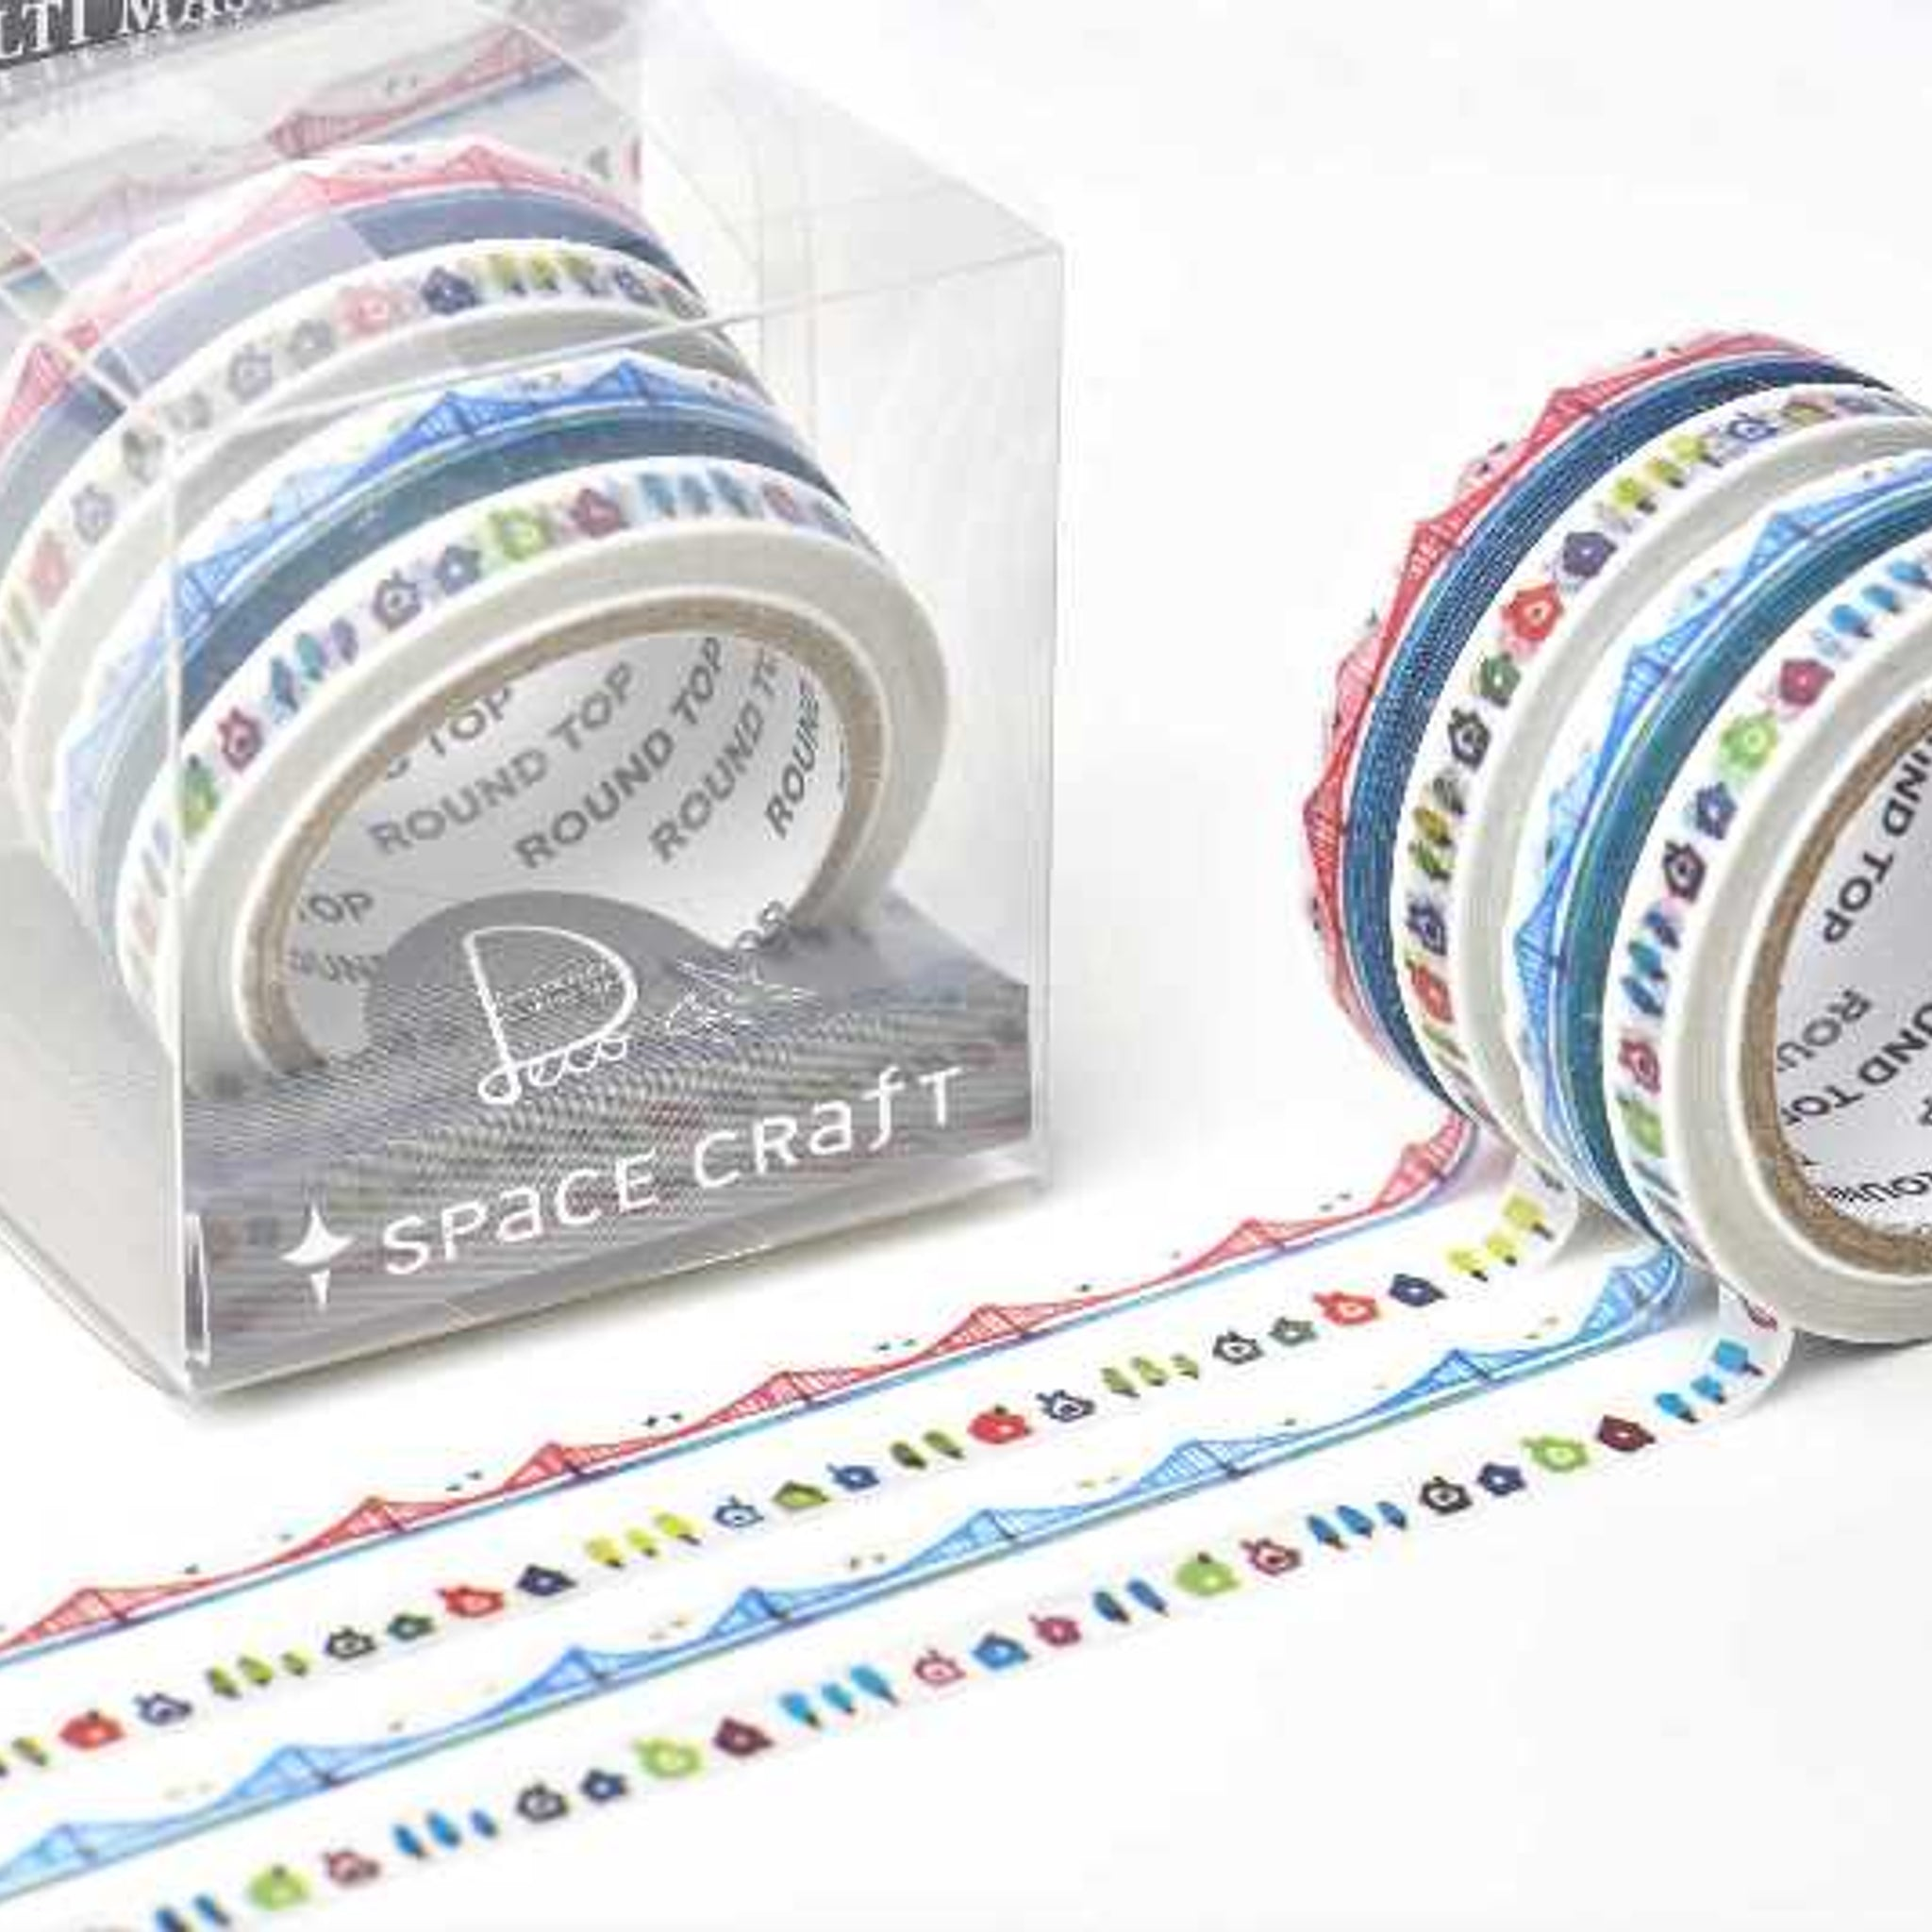 Round Top x Space Craft Washi Tape Set of 4 - Landscape